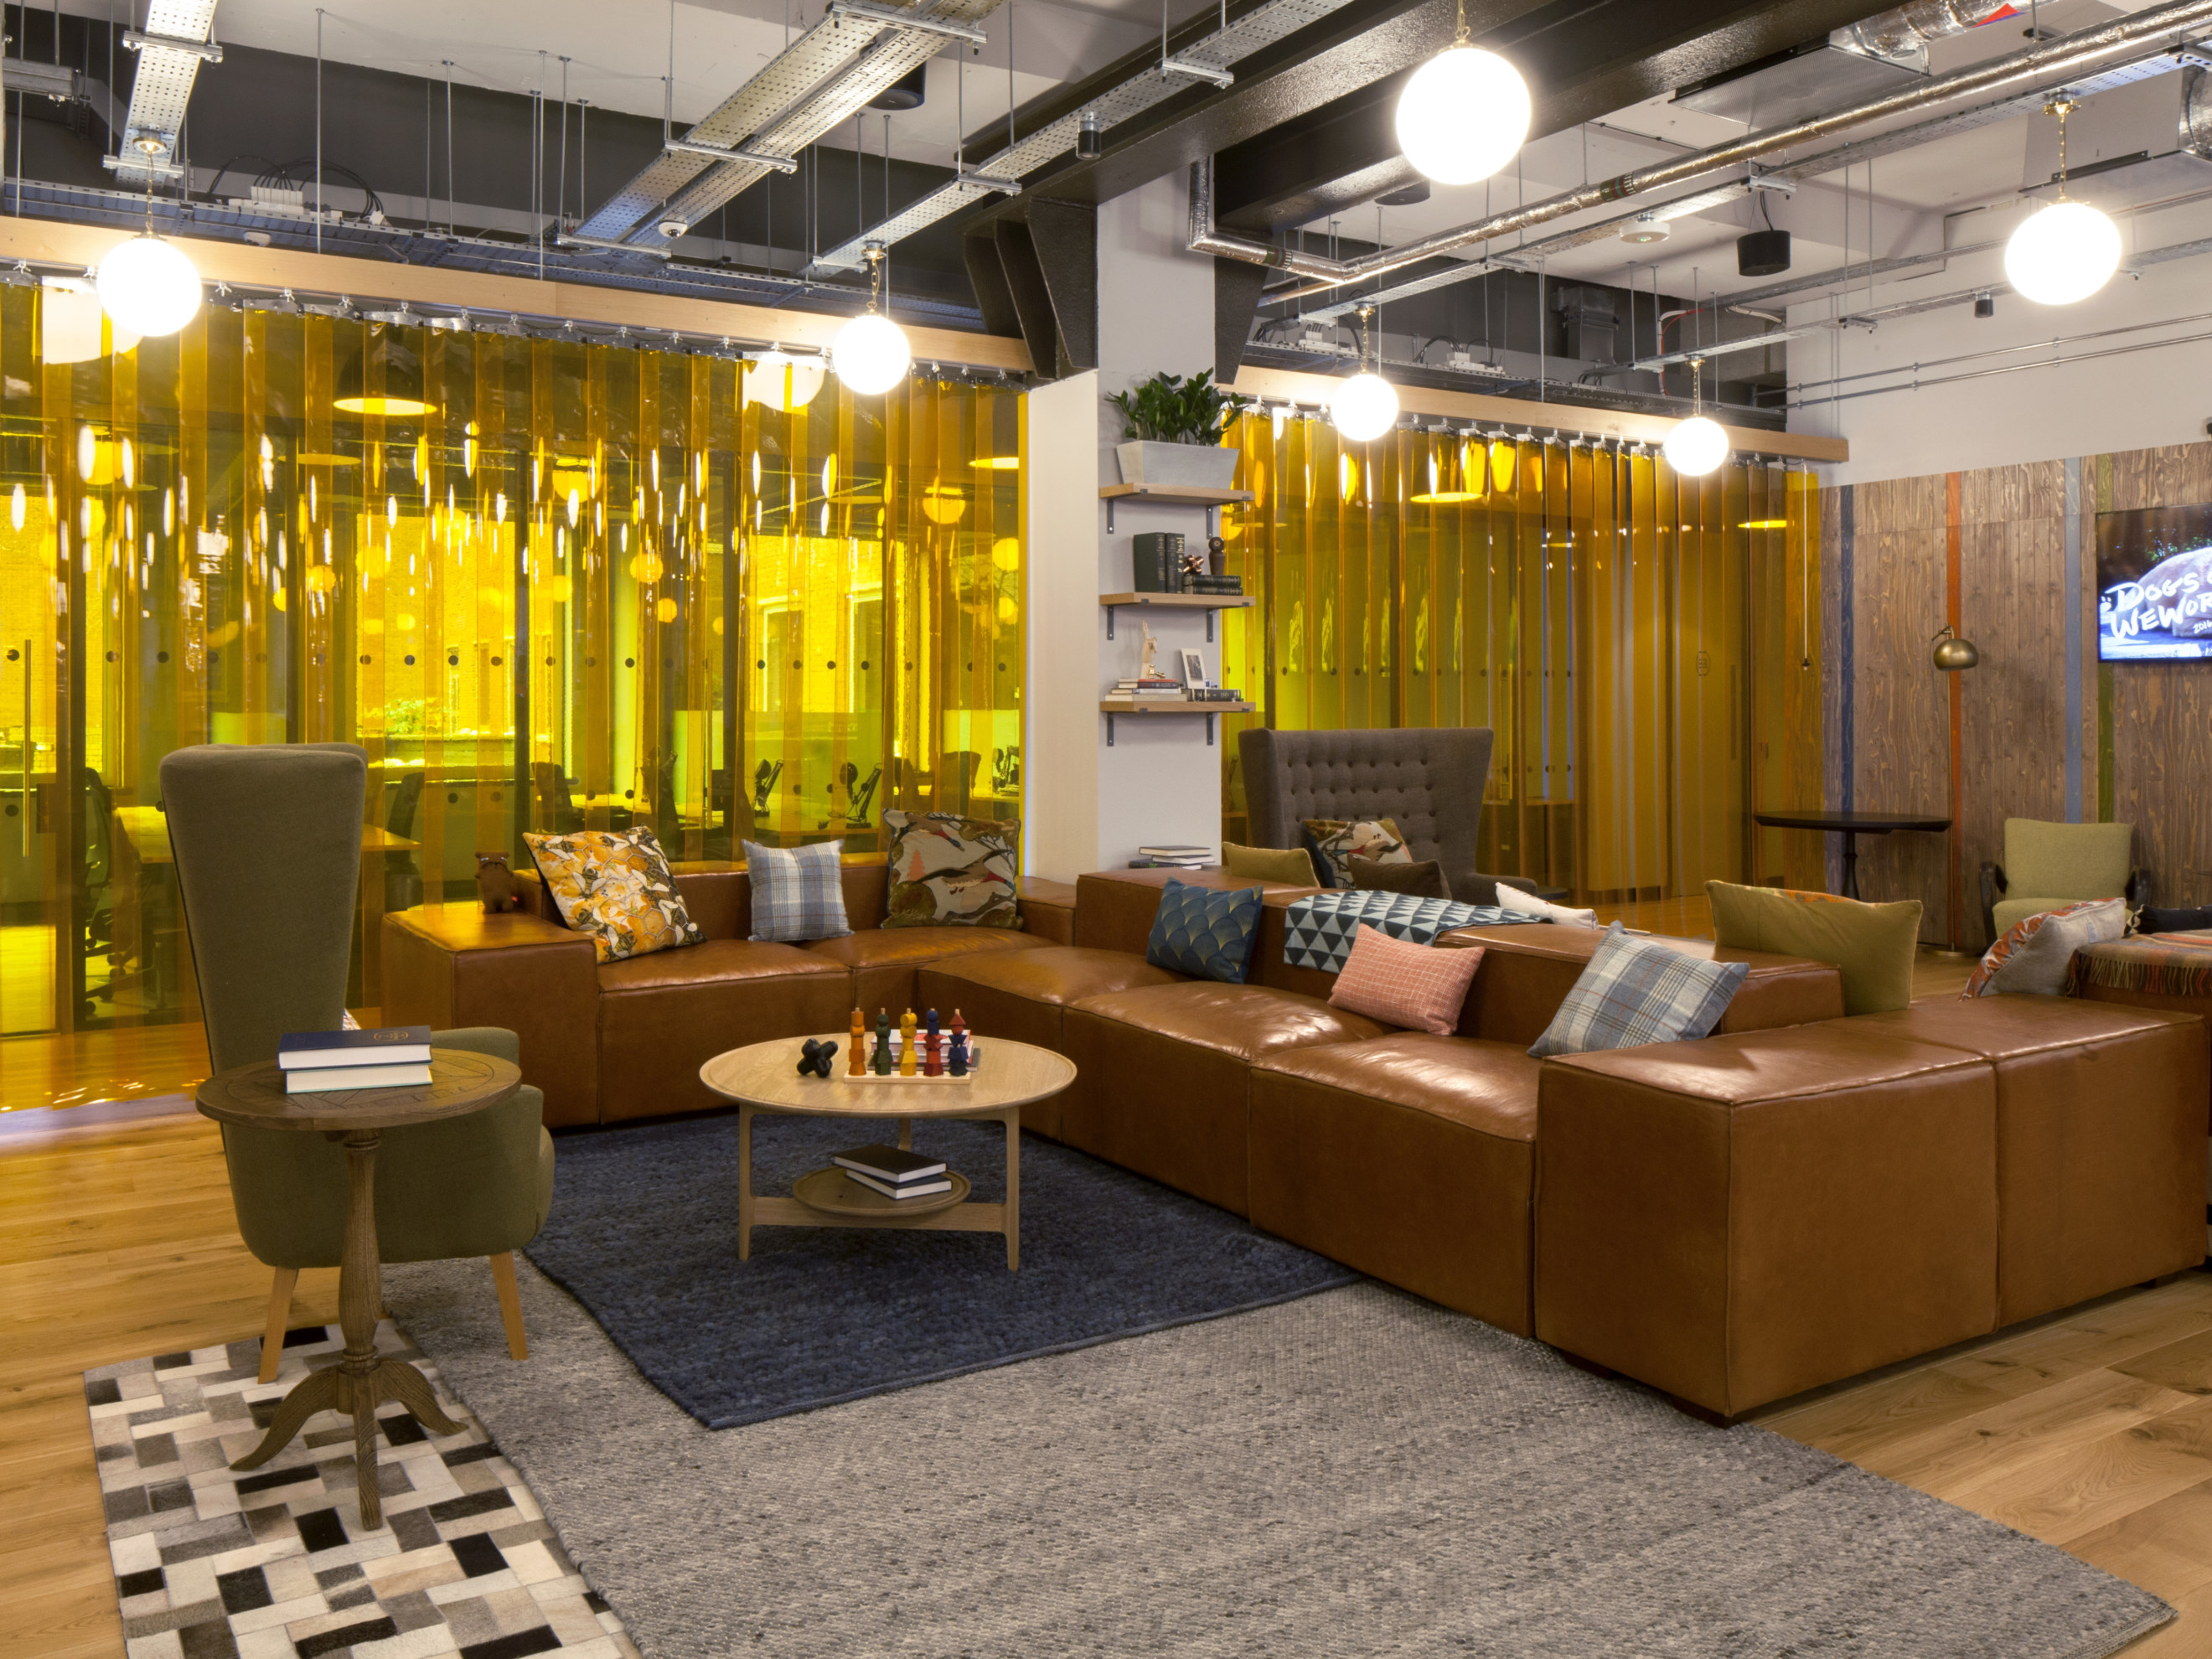 Office Design For Wework Chancery Lane _2640x1980_acf_cropped